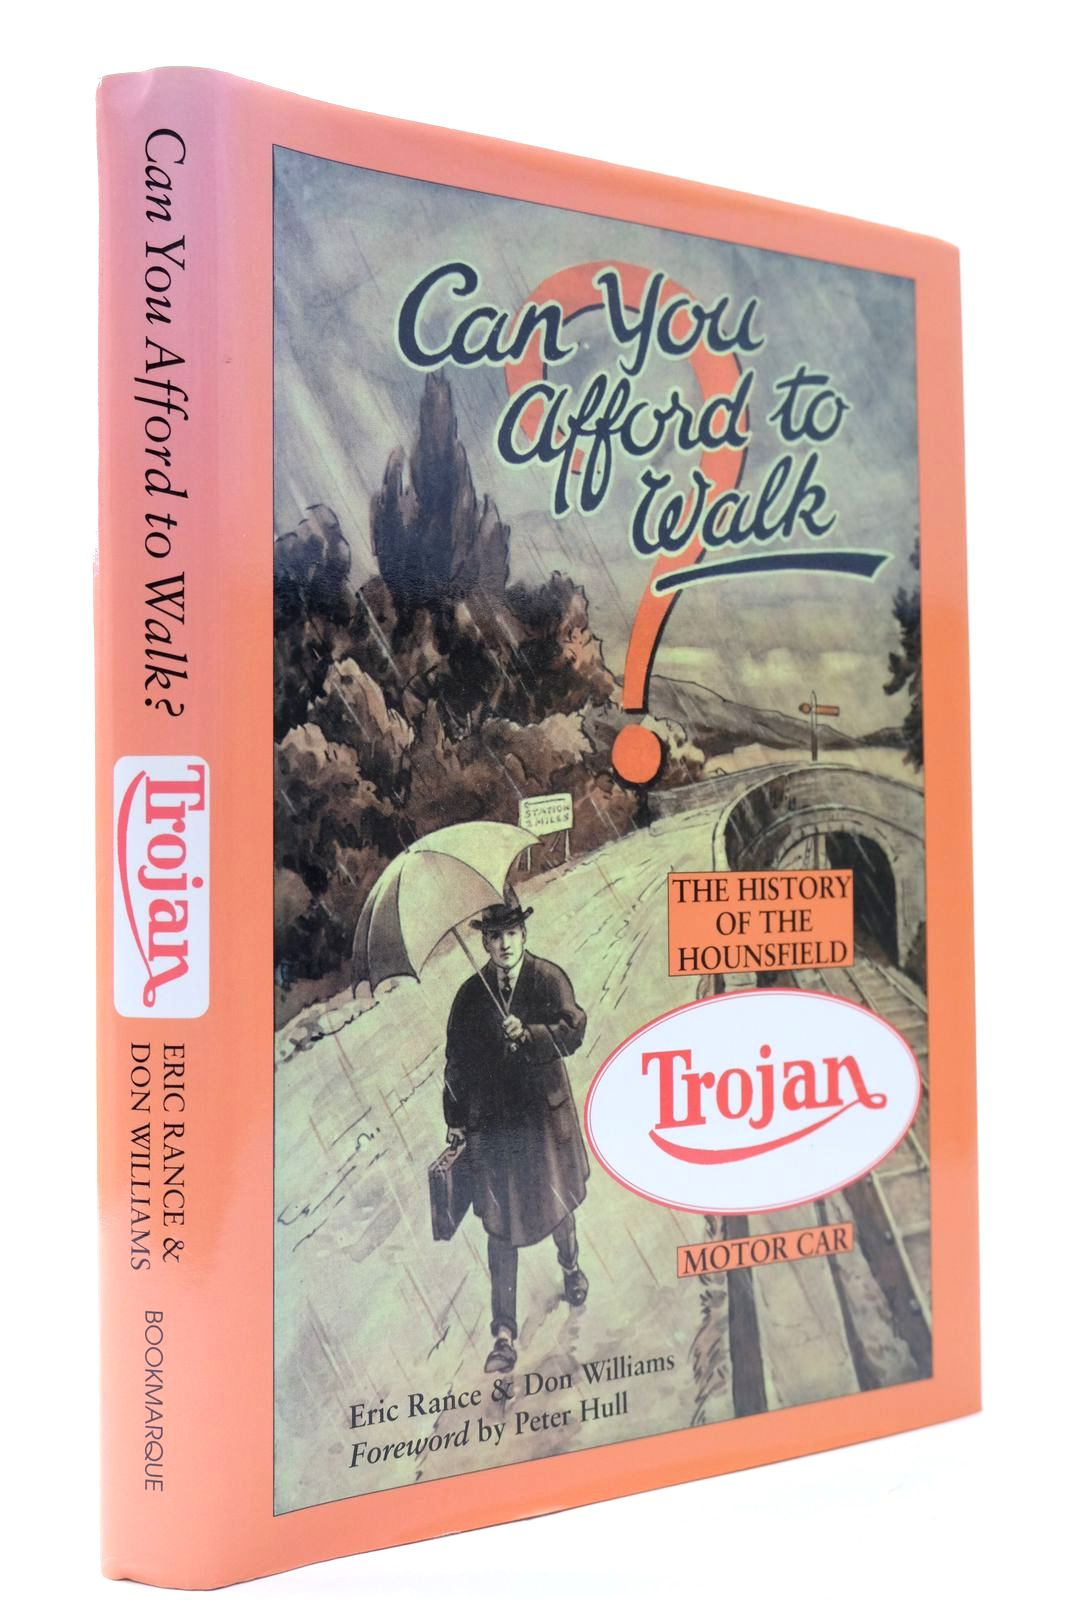 Photo of CAN YOU AFFORD TO WALK? THE HISTORY OF THE HOUNSFIELD TROJAN MOTOR CAR written by Rance, Eric<br />Williams, Don published by Bookmarque Publishing (STOCK CODE: 2132200)  for sale by Stella & Rose's Books